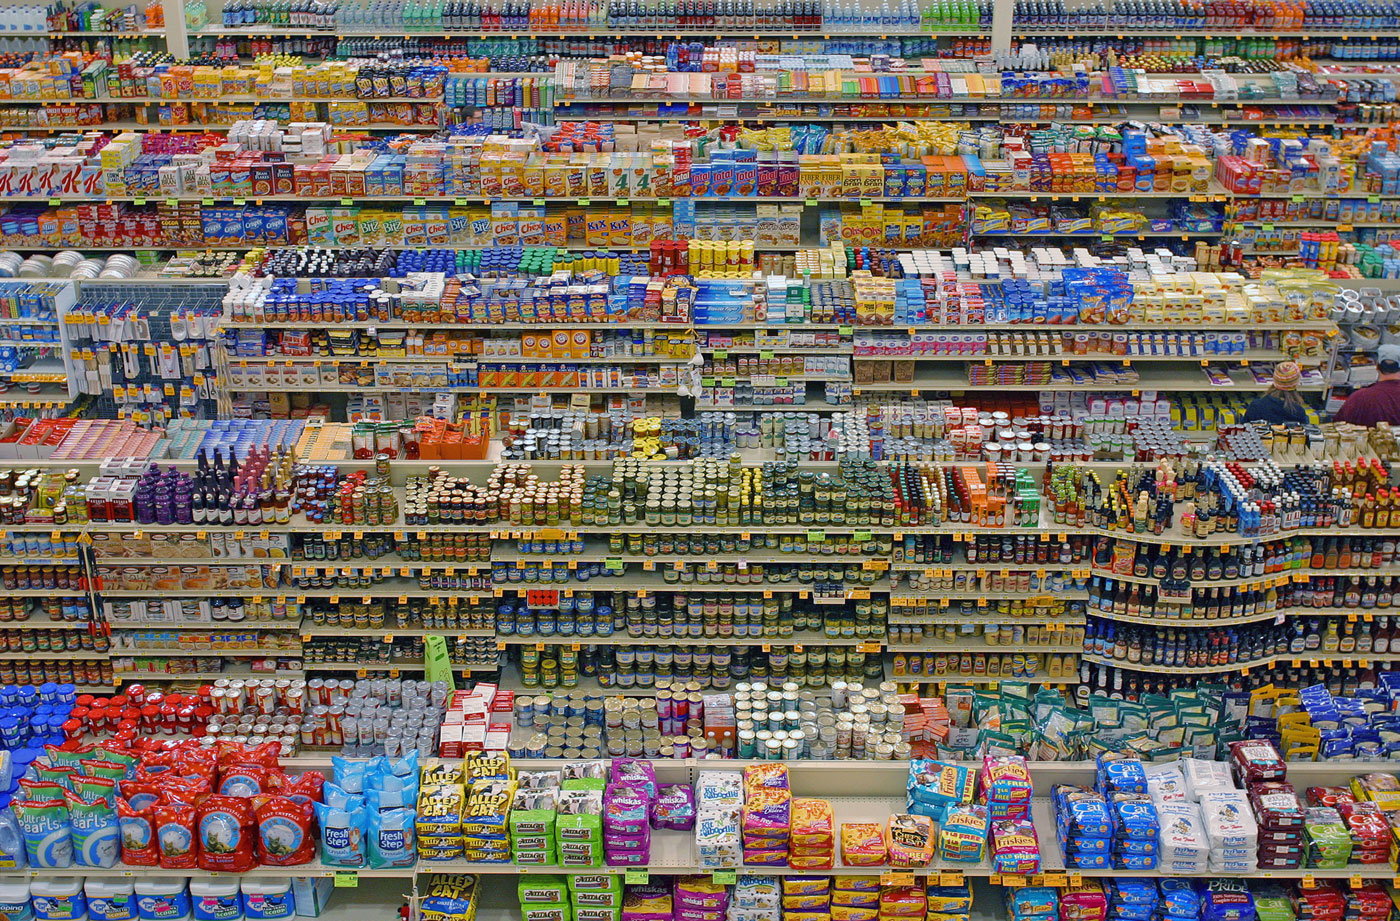 Andreas gursky diptych 99 cent store ii 2001